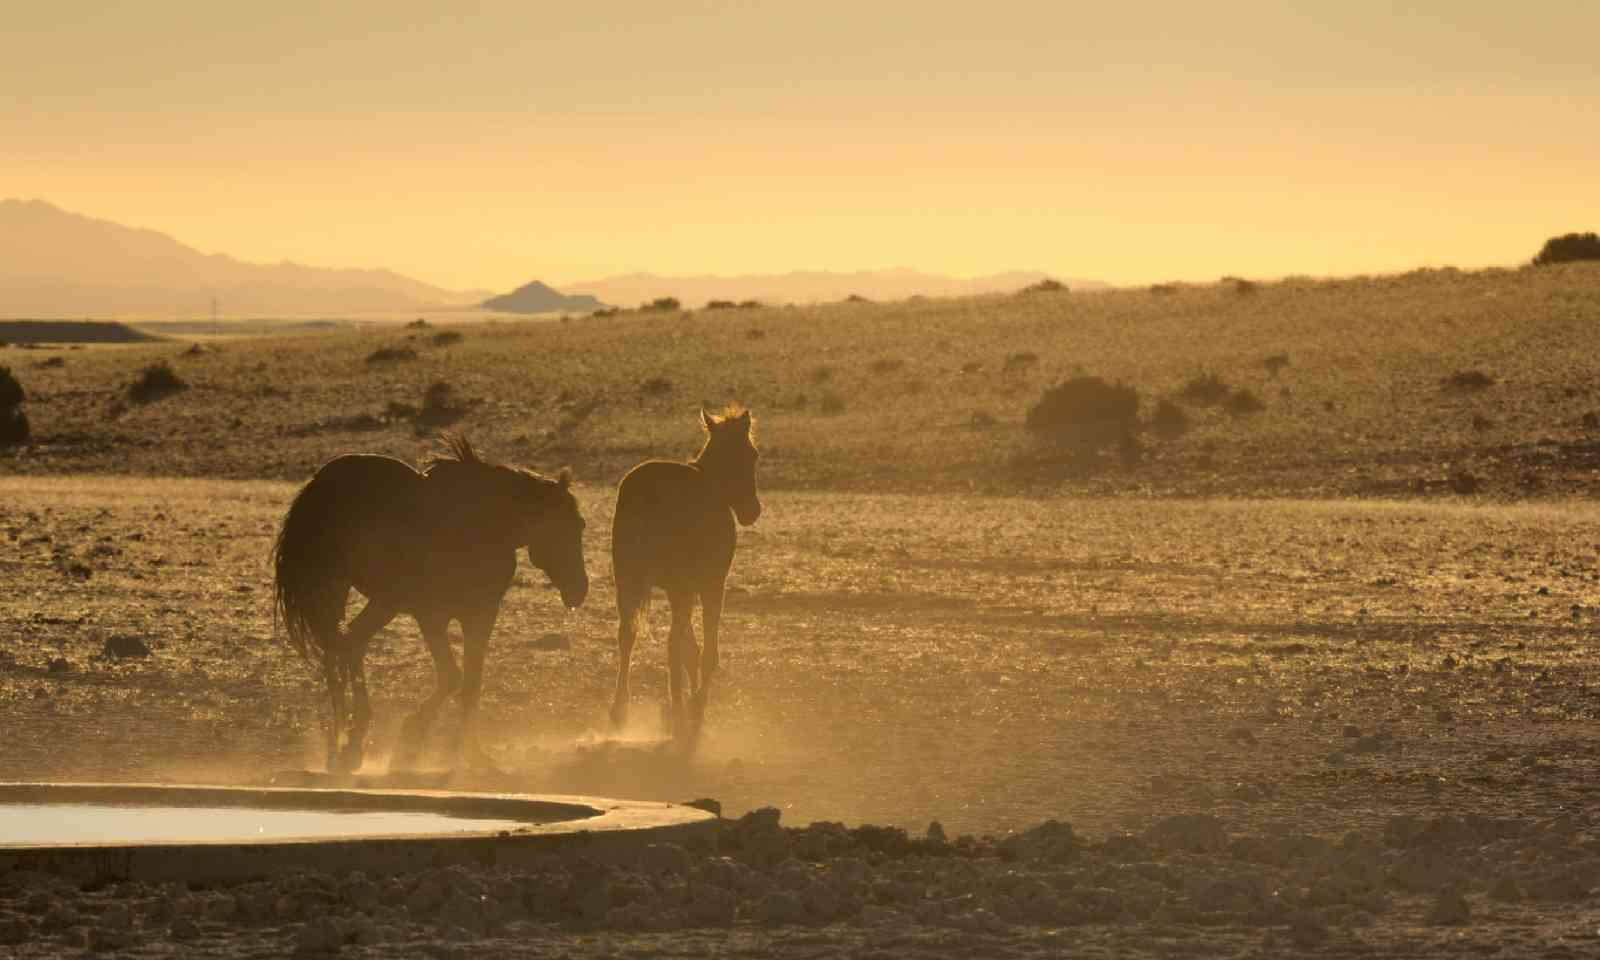 Wild horses of the Namib at sunset (Shutterstock)